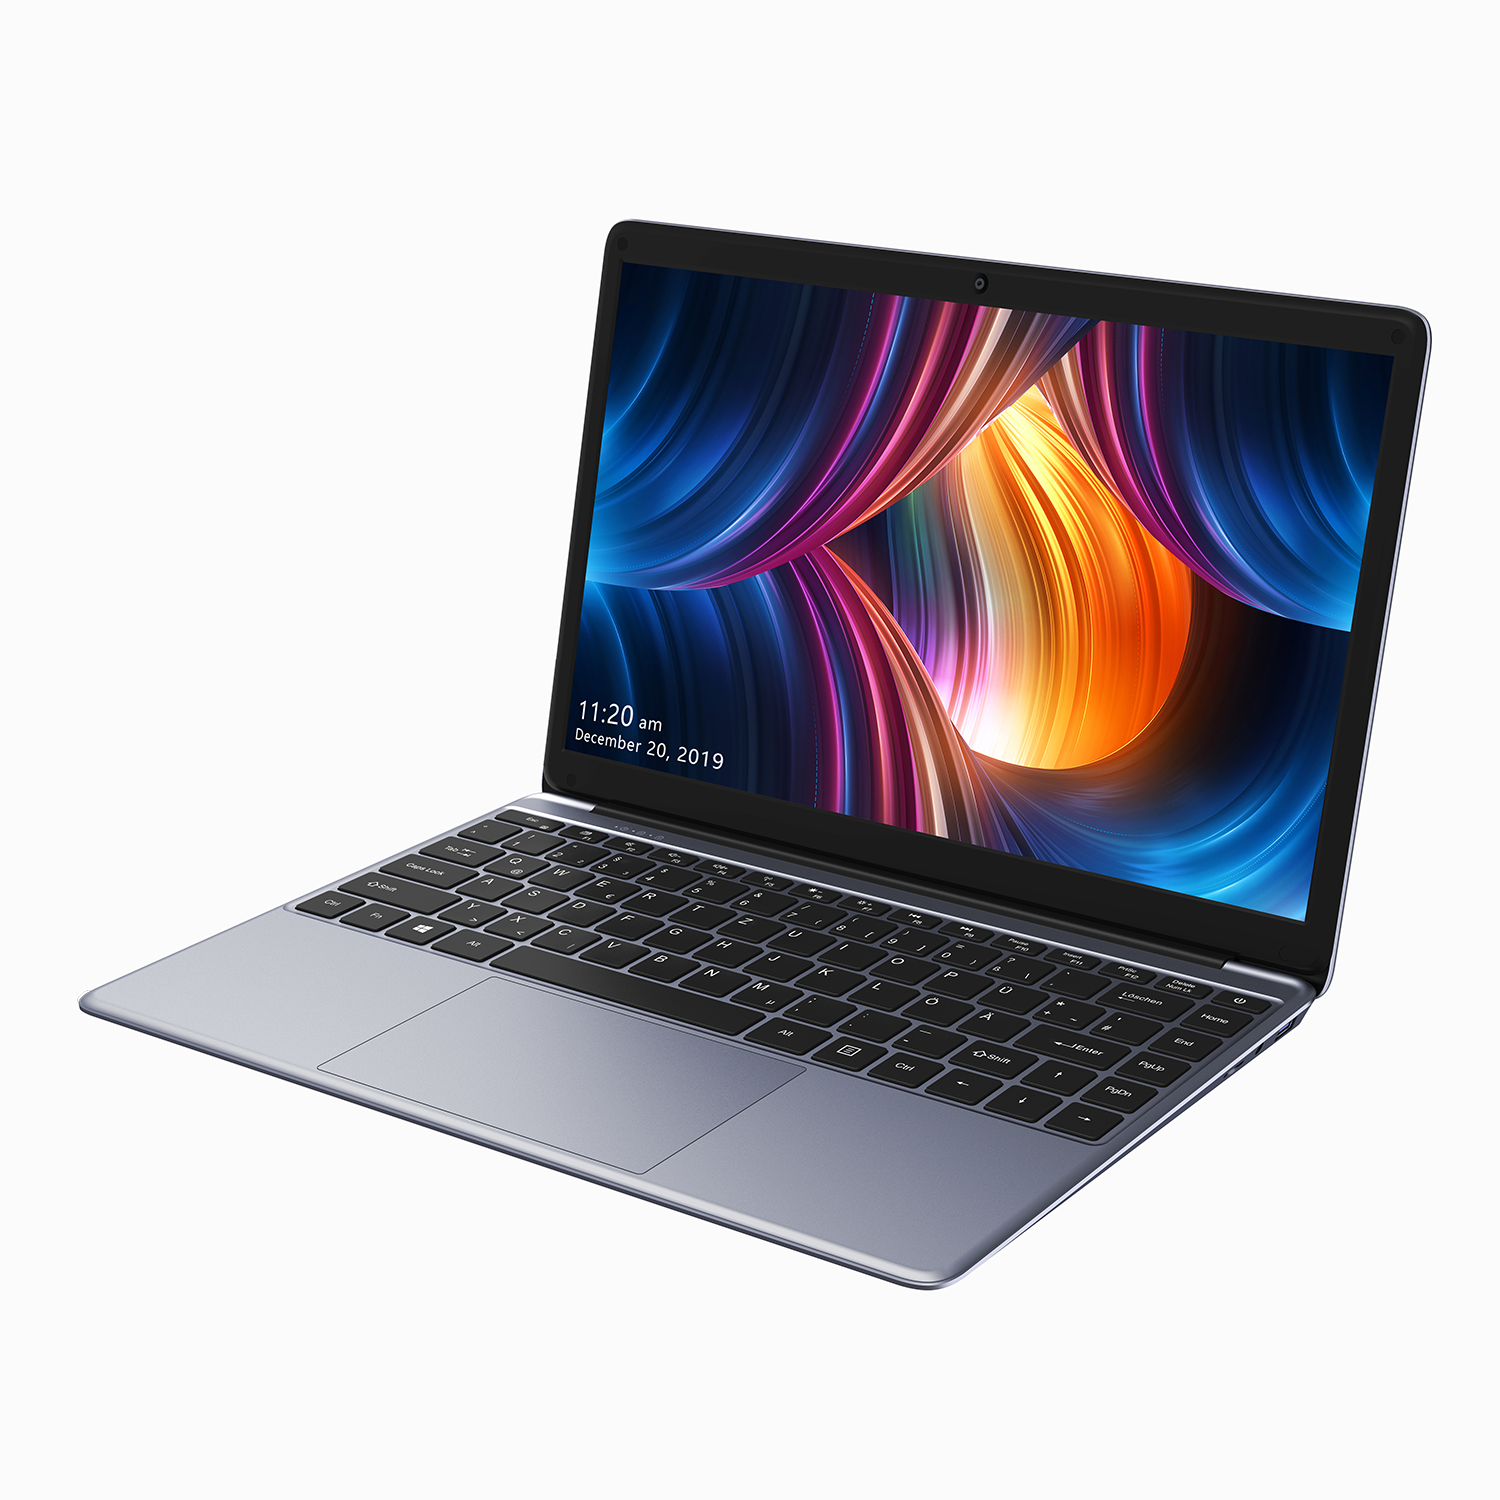 Kualitas Tinggi CHUWI HeroBook Pro Netbook 14.1 Inch Windows 10 Laptop 8GB 256GB Intel Gemini Lake N4000 Tipis Laptop Murah